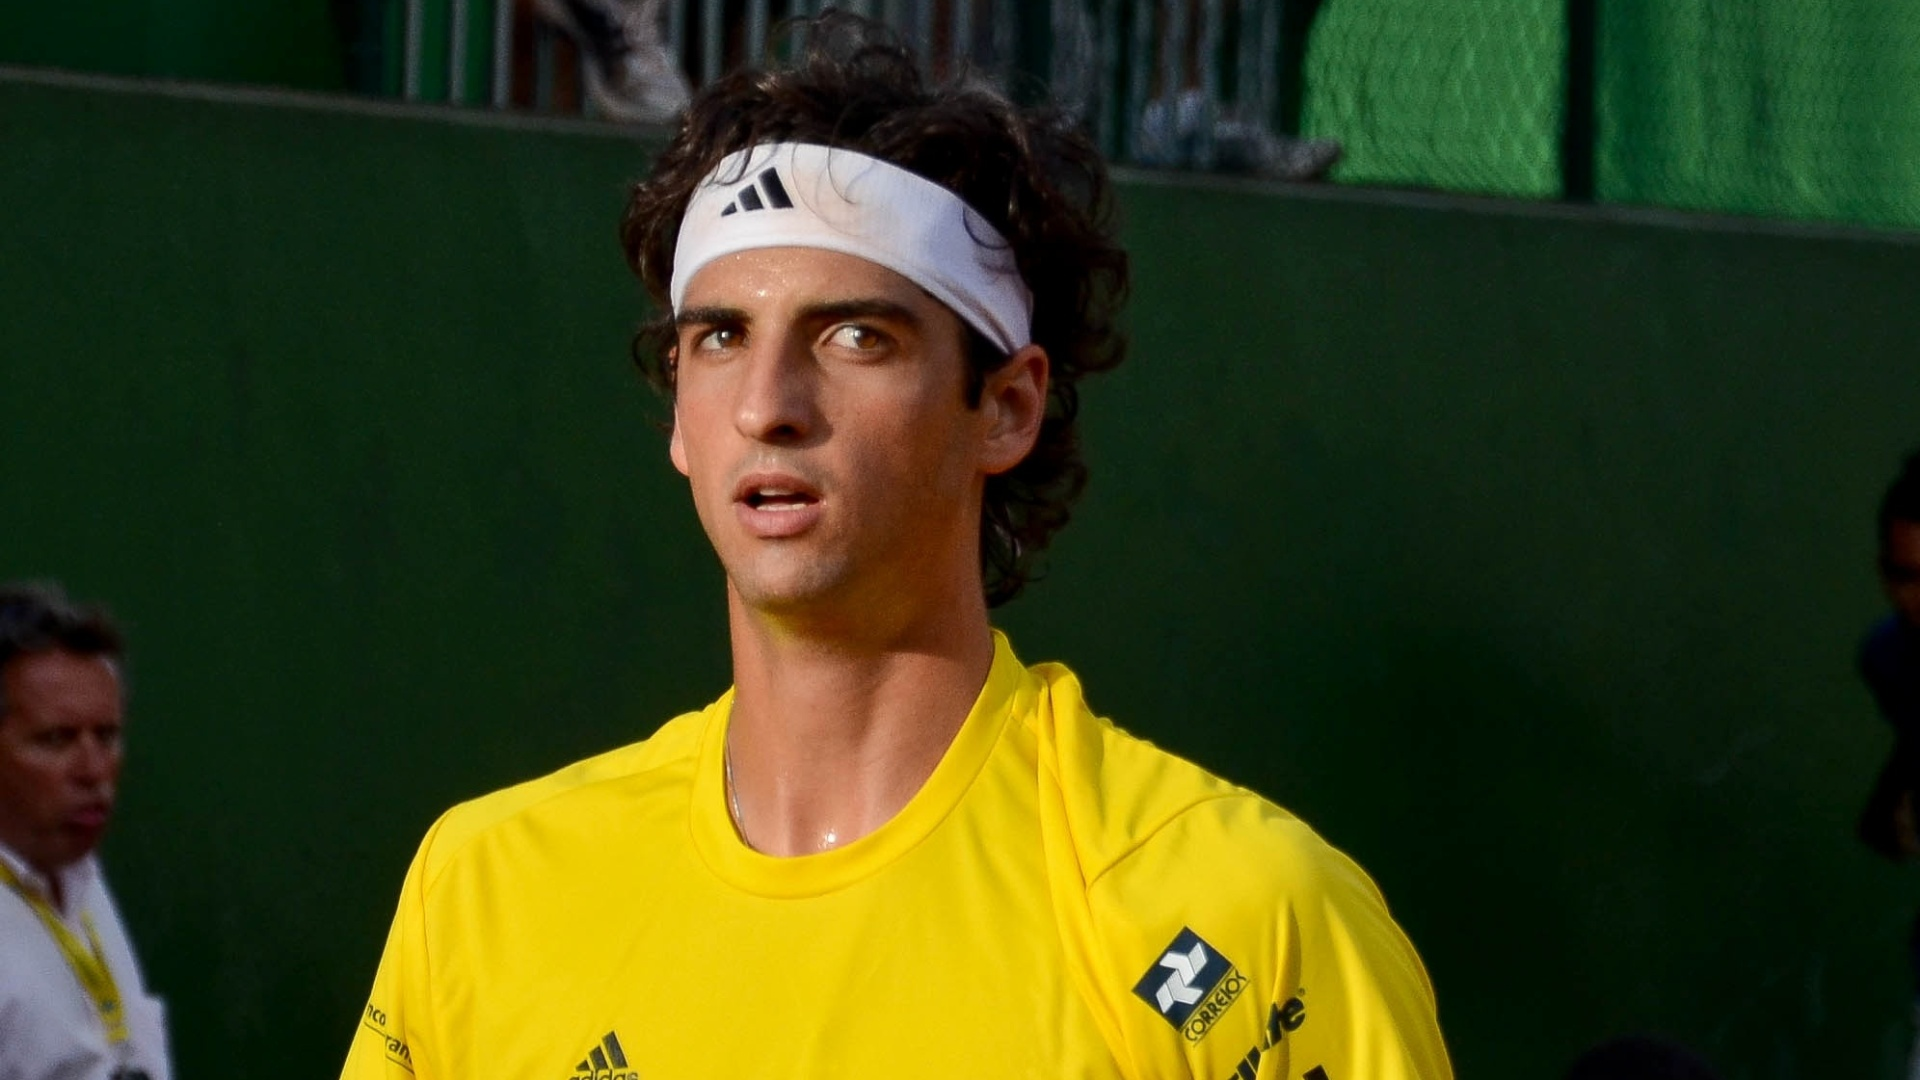 Tenista brasileiro Thomaz Bellucci durante partida contra o colombiano Giraldo